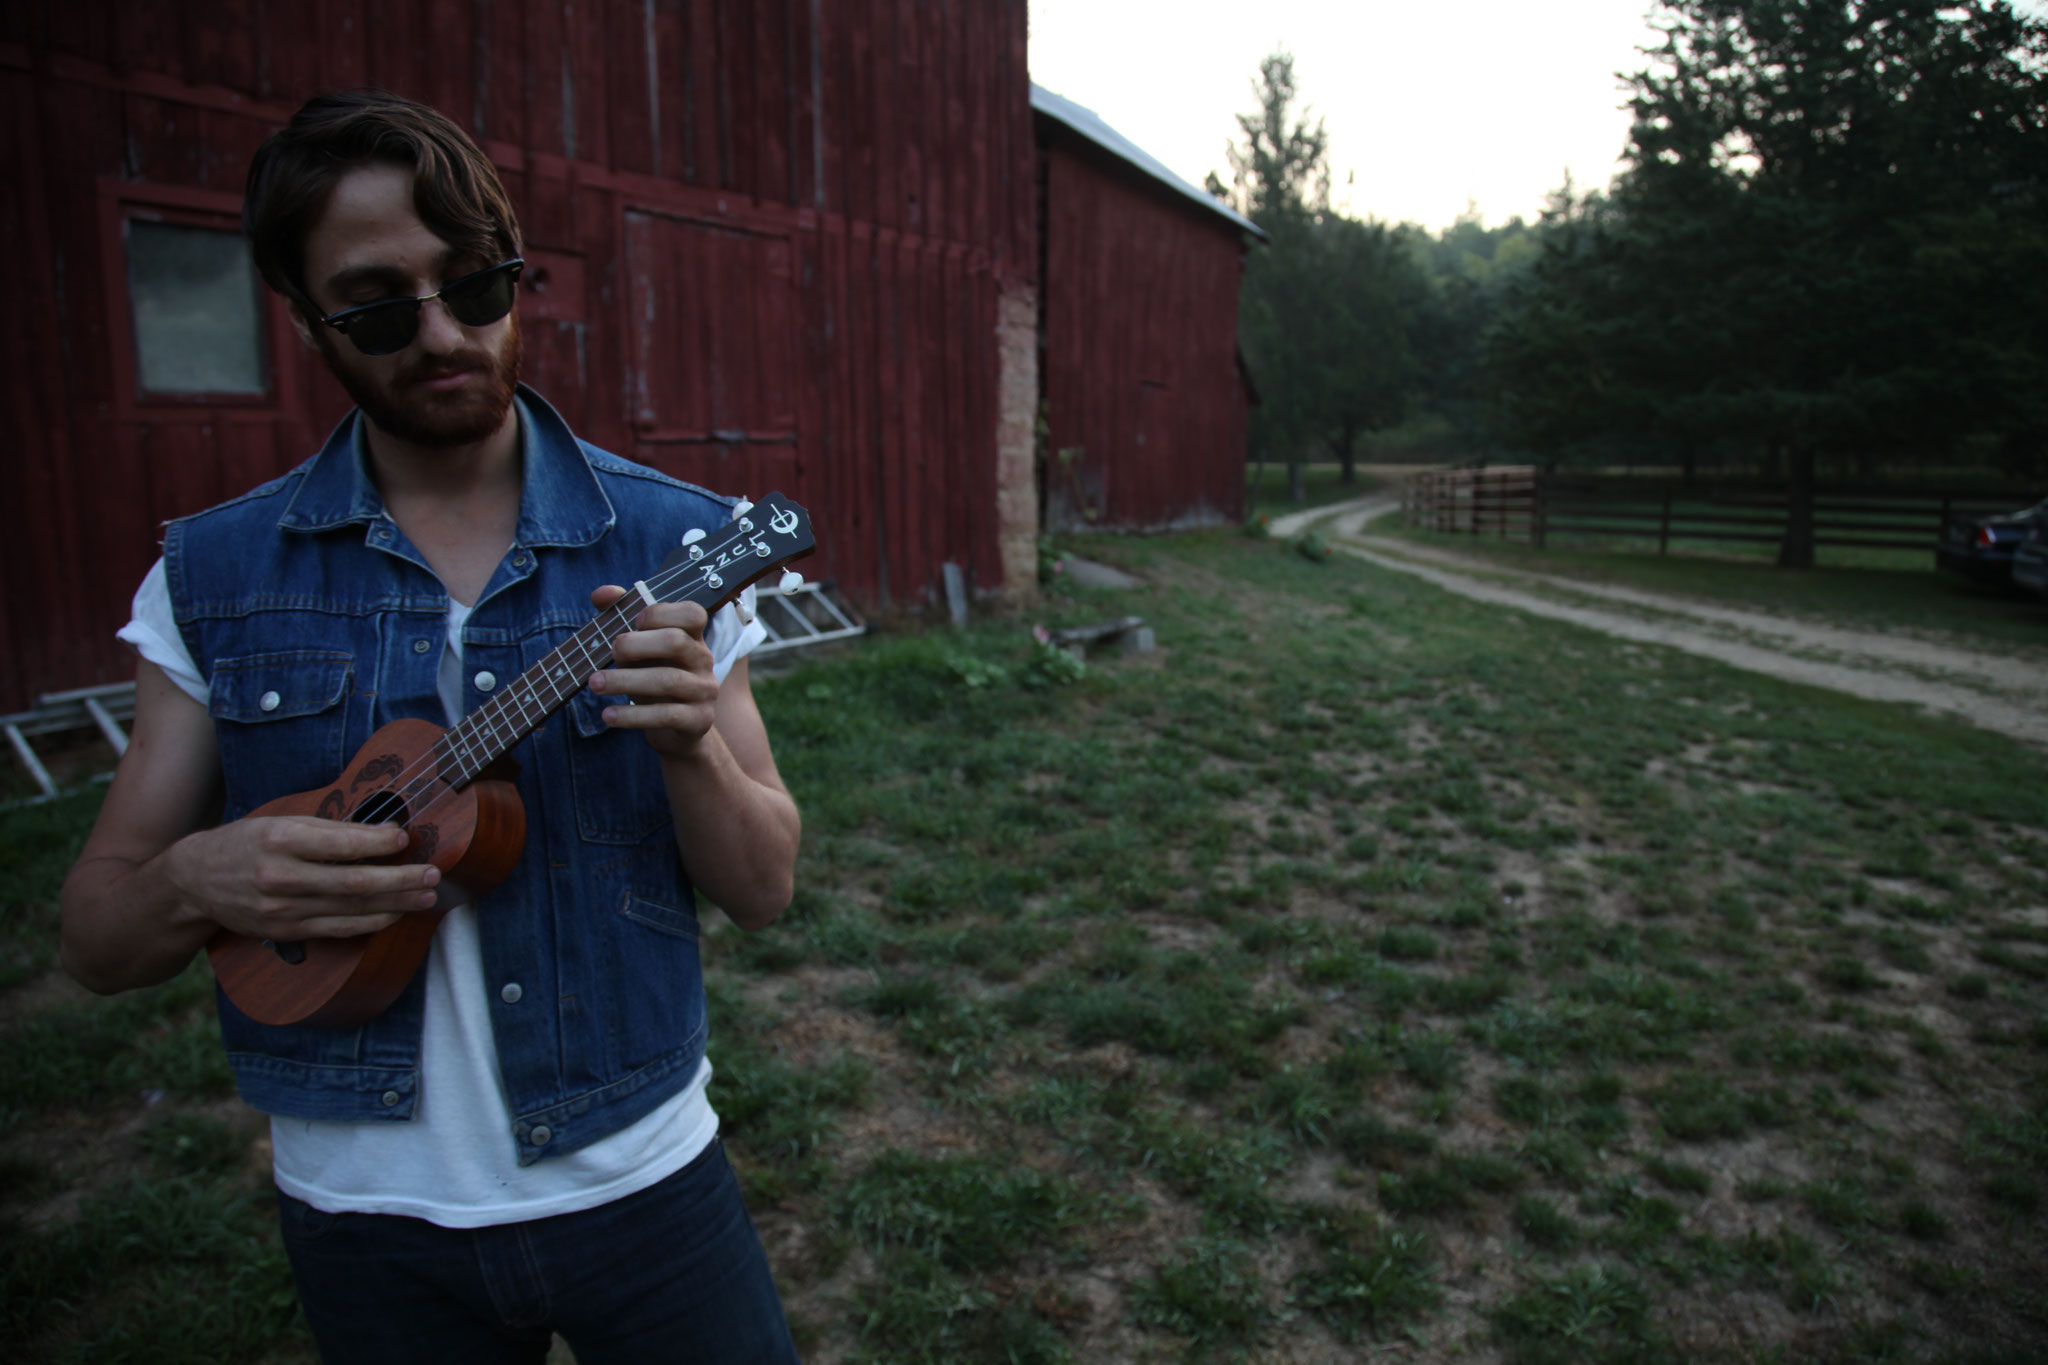 Adam Budron was playing the ukulele long before the hipster movement took over.